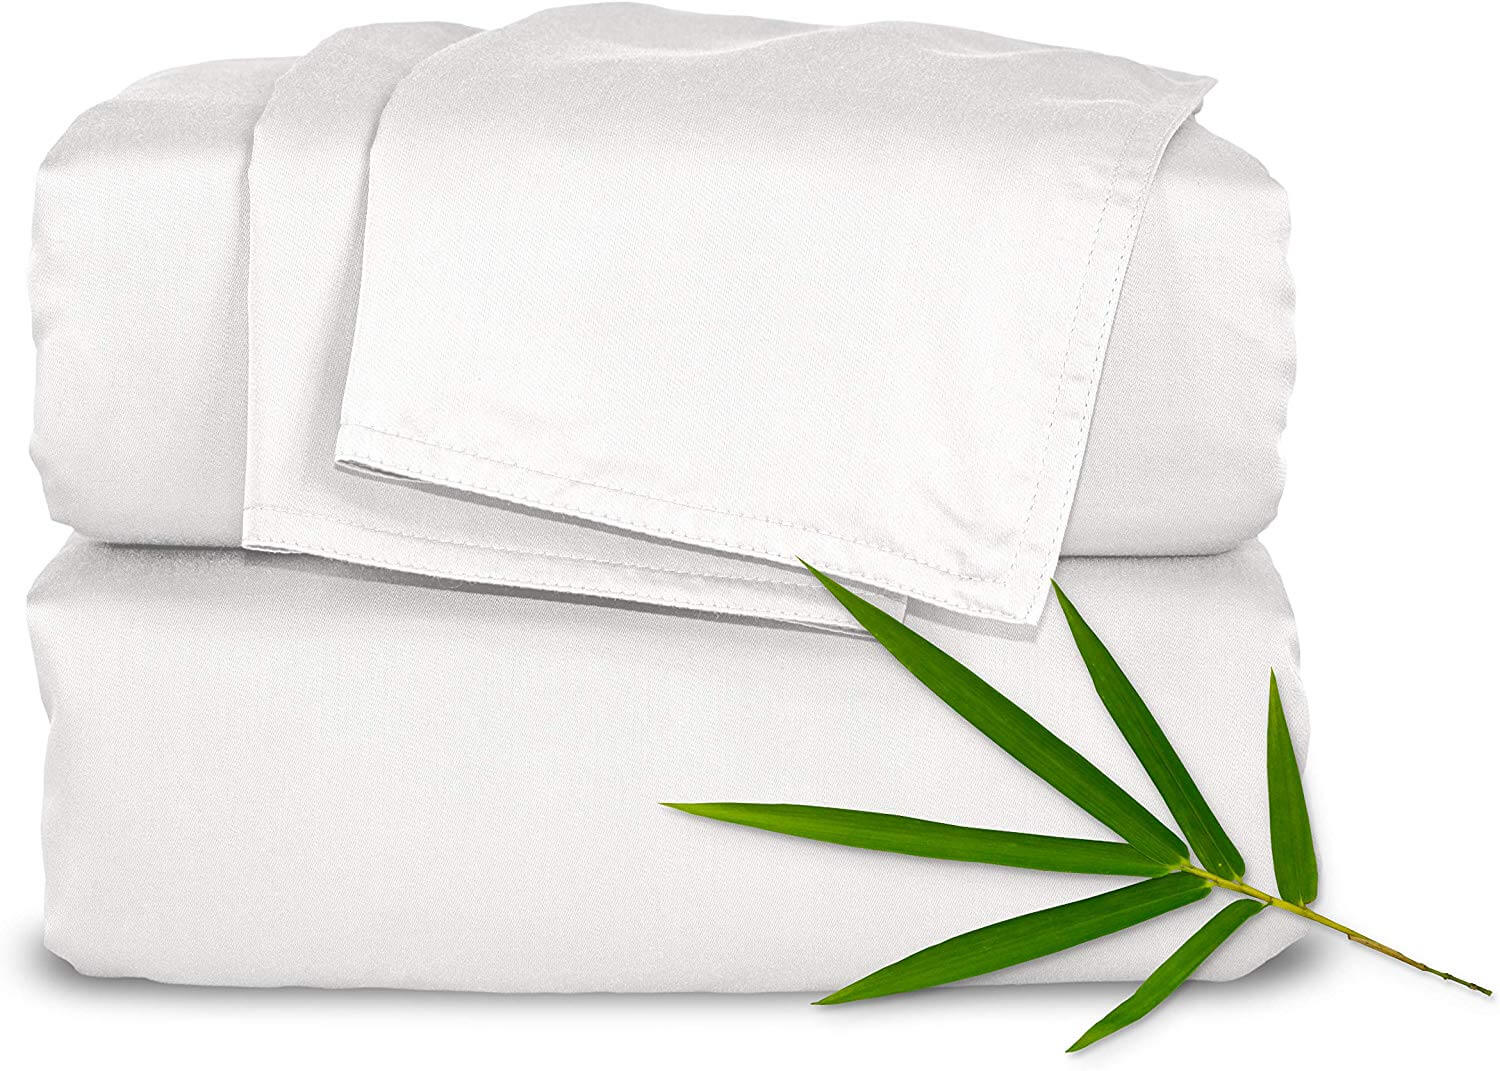 """Pure Bamboo Sheets - Short Queen Size Bed Sheets 4-pc Set for RV or Camper (60""""x75"""") - 100% Organic Bamboo - Incredibly Soft - 1 Fitted Sheet, 1 Flat Sheet, 2 Pillowcases (Short Queen, White)"""